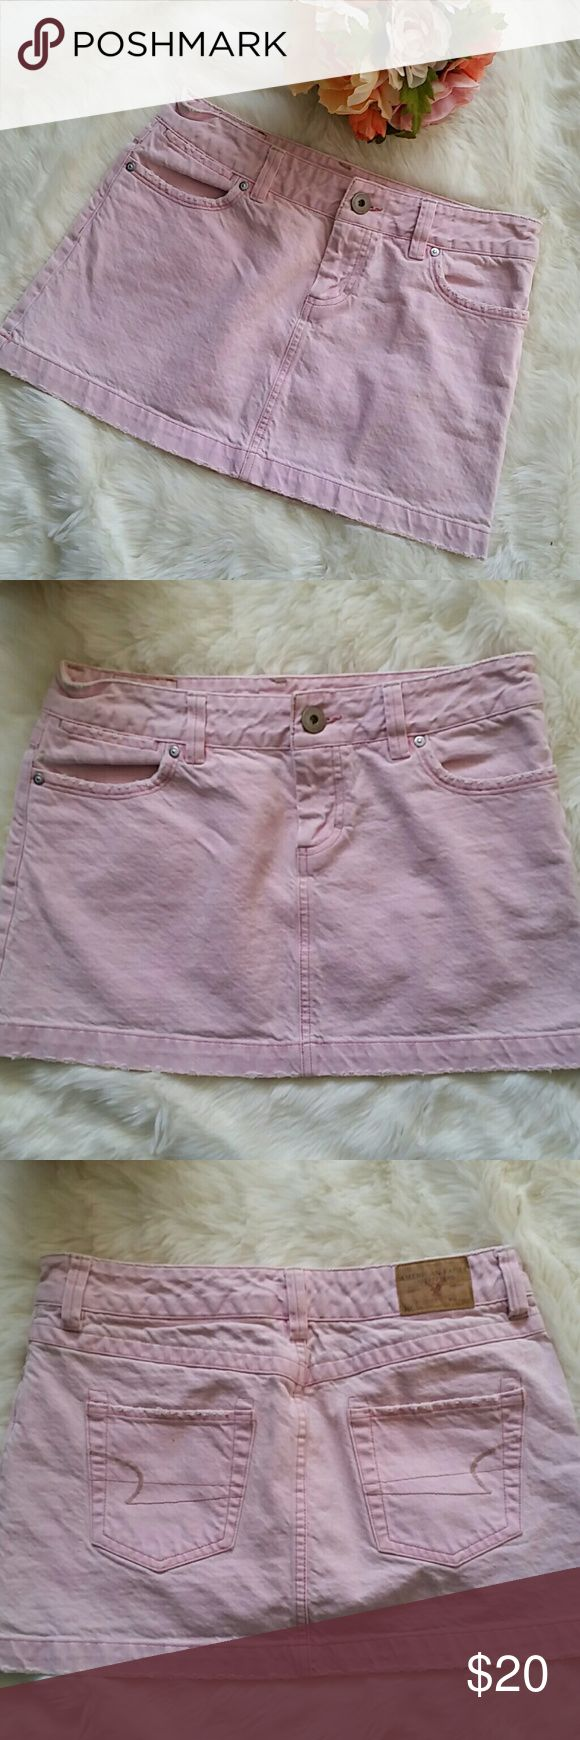 🕓 FINAL PRICE! Blush denim mini skirt Adorable blush mini skirt from American Eagle.  Destroyed look.  Small mark of left back pocket,  pictured and otherwise excellent condition.  Measures 11.5 inches long. American Eagle Outfitters Skirts Mini